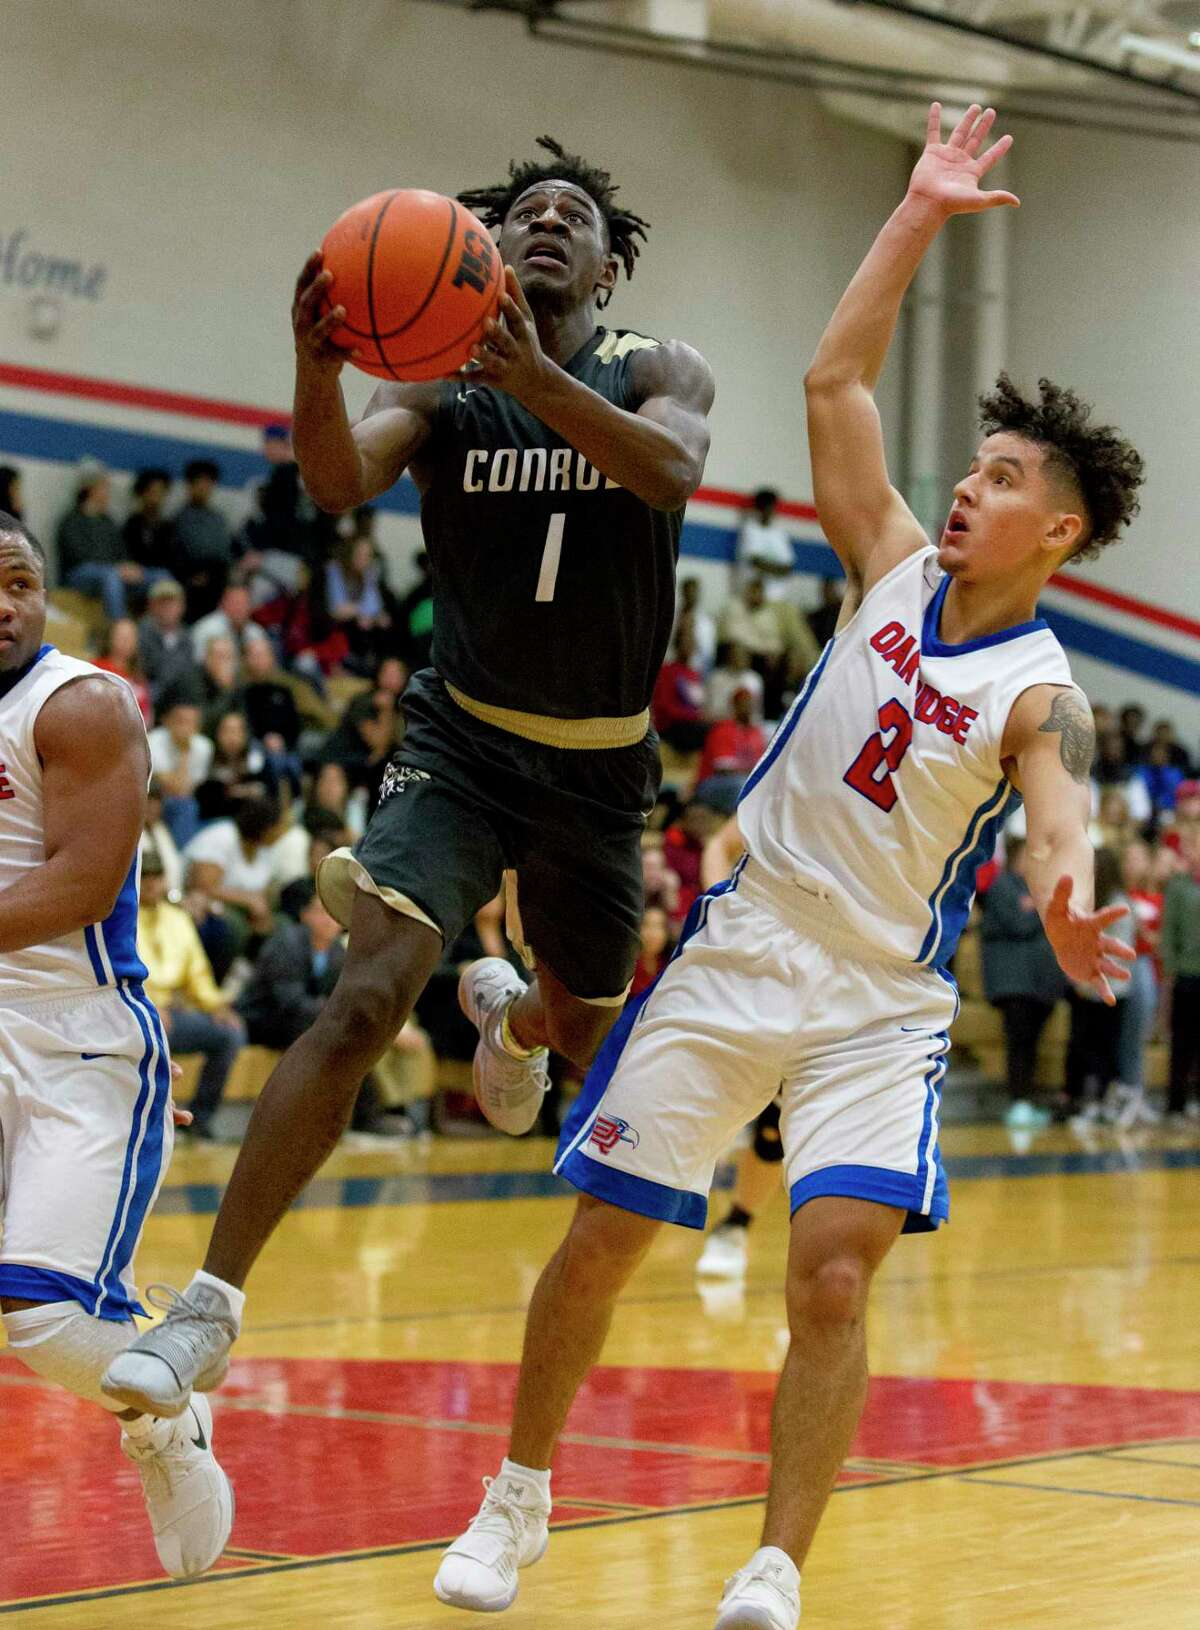 Conroe guard Jay Lewis (1) shoots under pressure by Oak Ridge guard Cristian Calix (2) during the fourth quarter of a District 12-6A high school boys basketball game at Oak Ridge High School, Friday, Jan. 12, 2018.